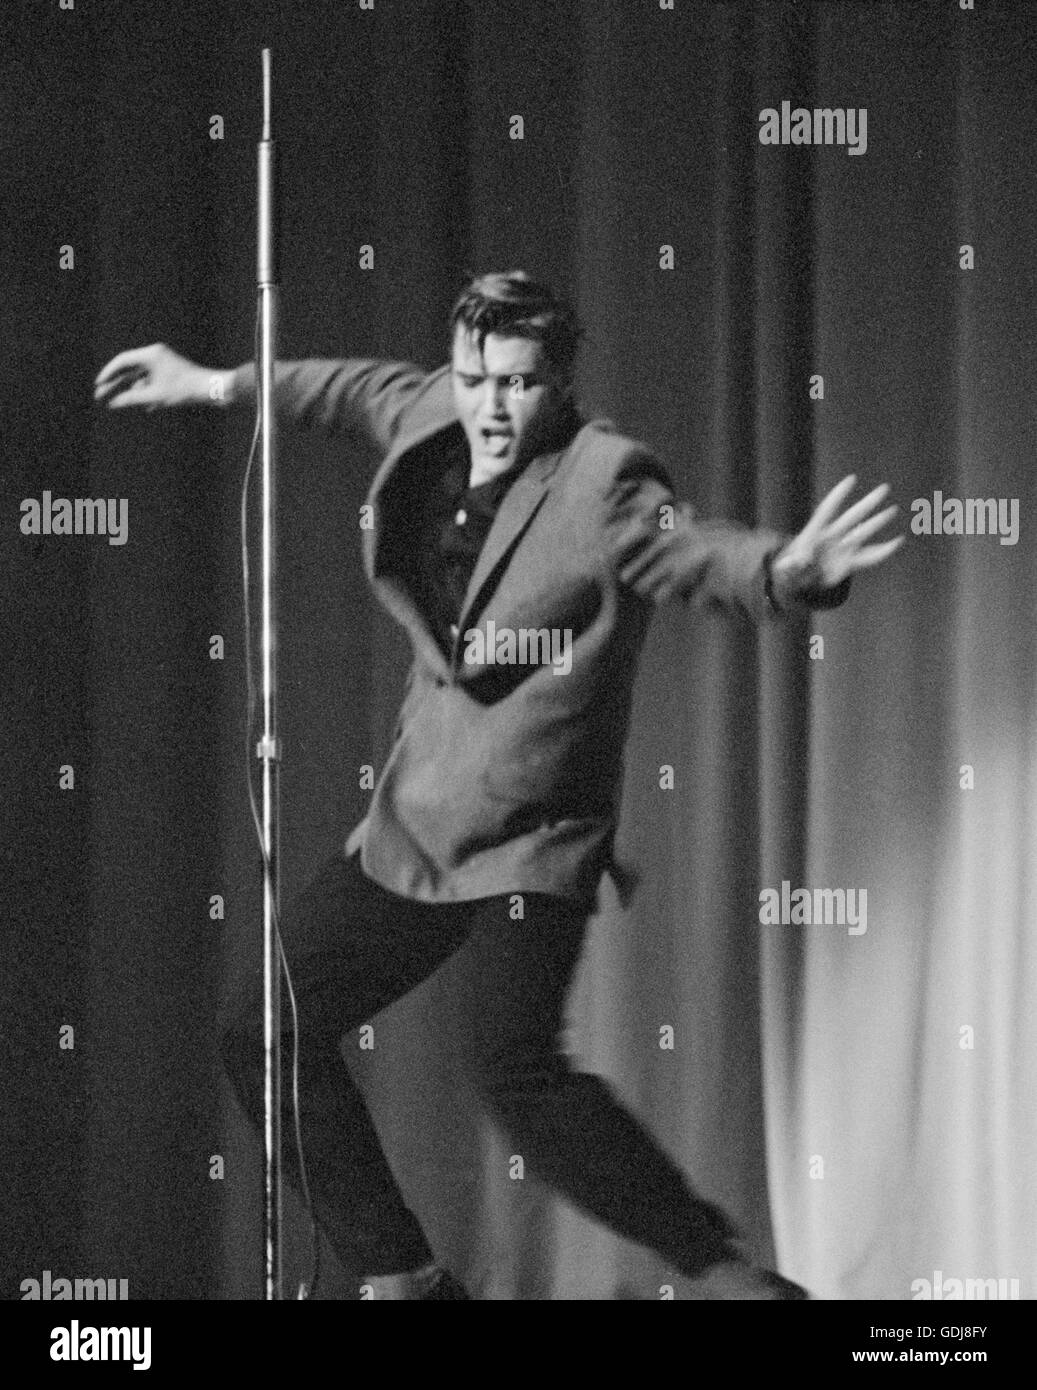 Elvis Presley, performing on stage, May 26, 1956. Stock Photo